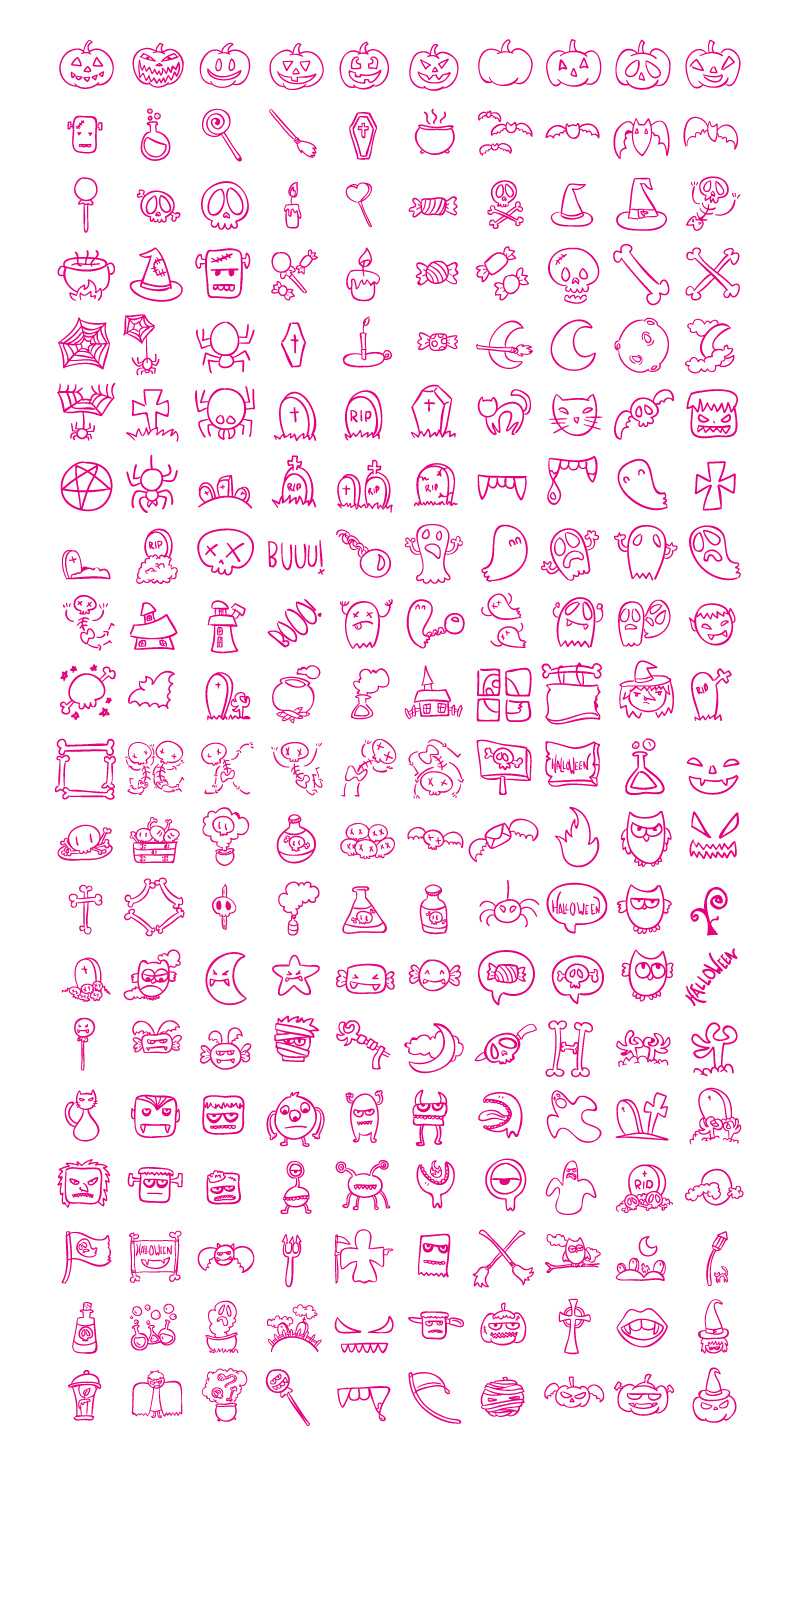 200 Free Halloween Icons PNG & SVG - boceto halloween 01